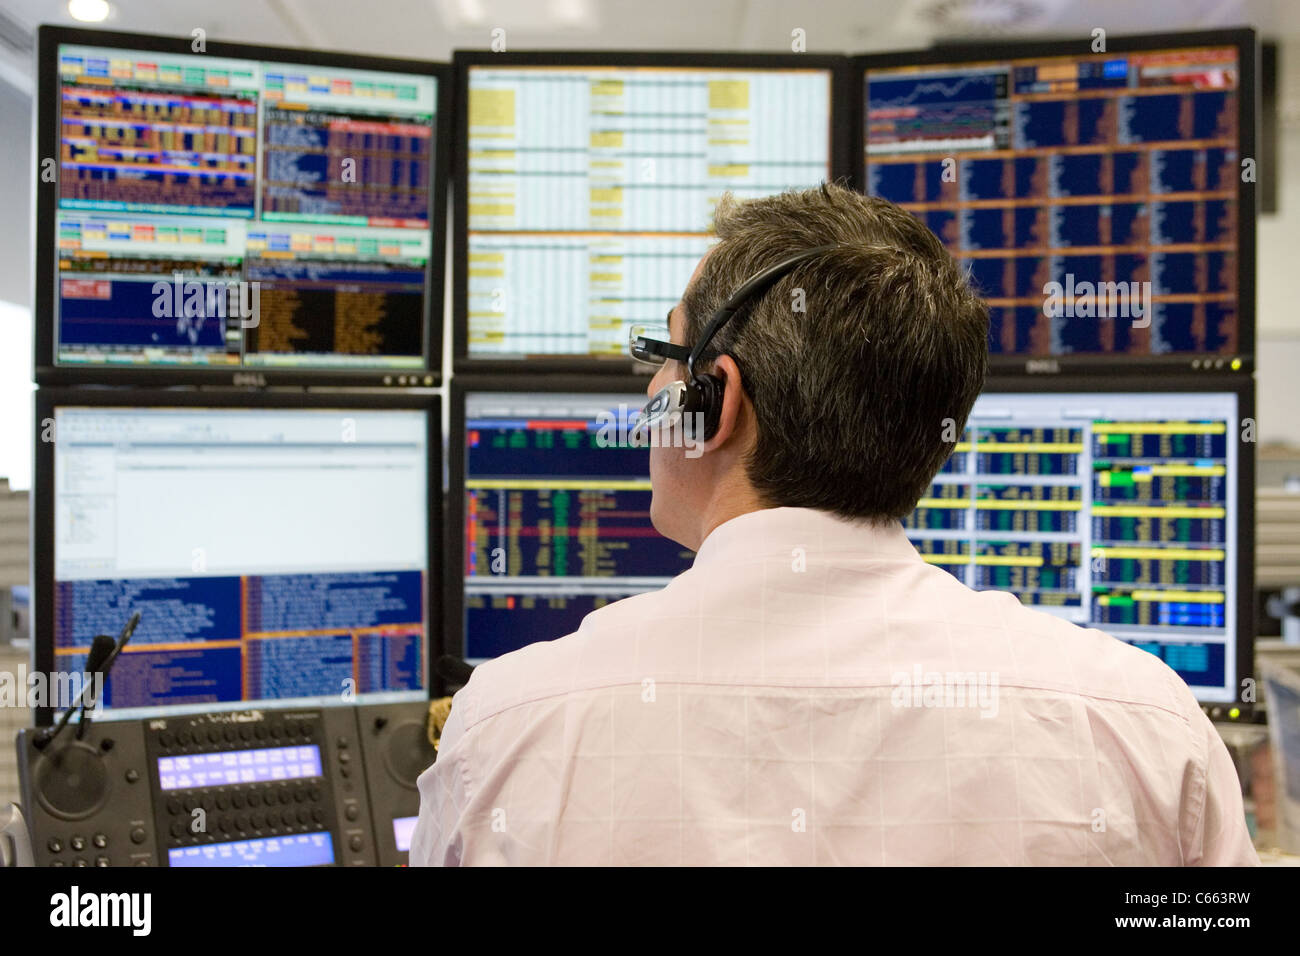 A trader wearing a headset watches his computer screens. - Stock Image